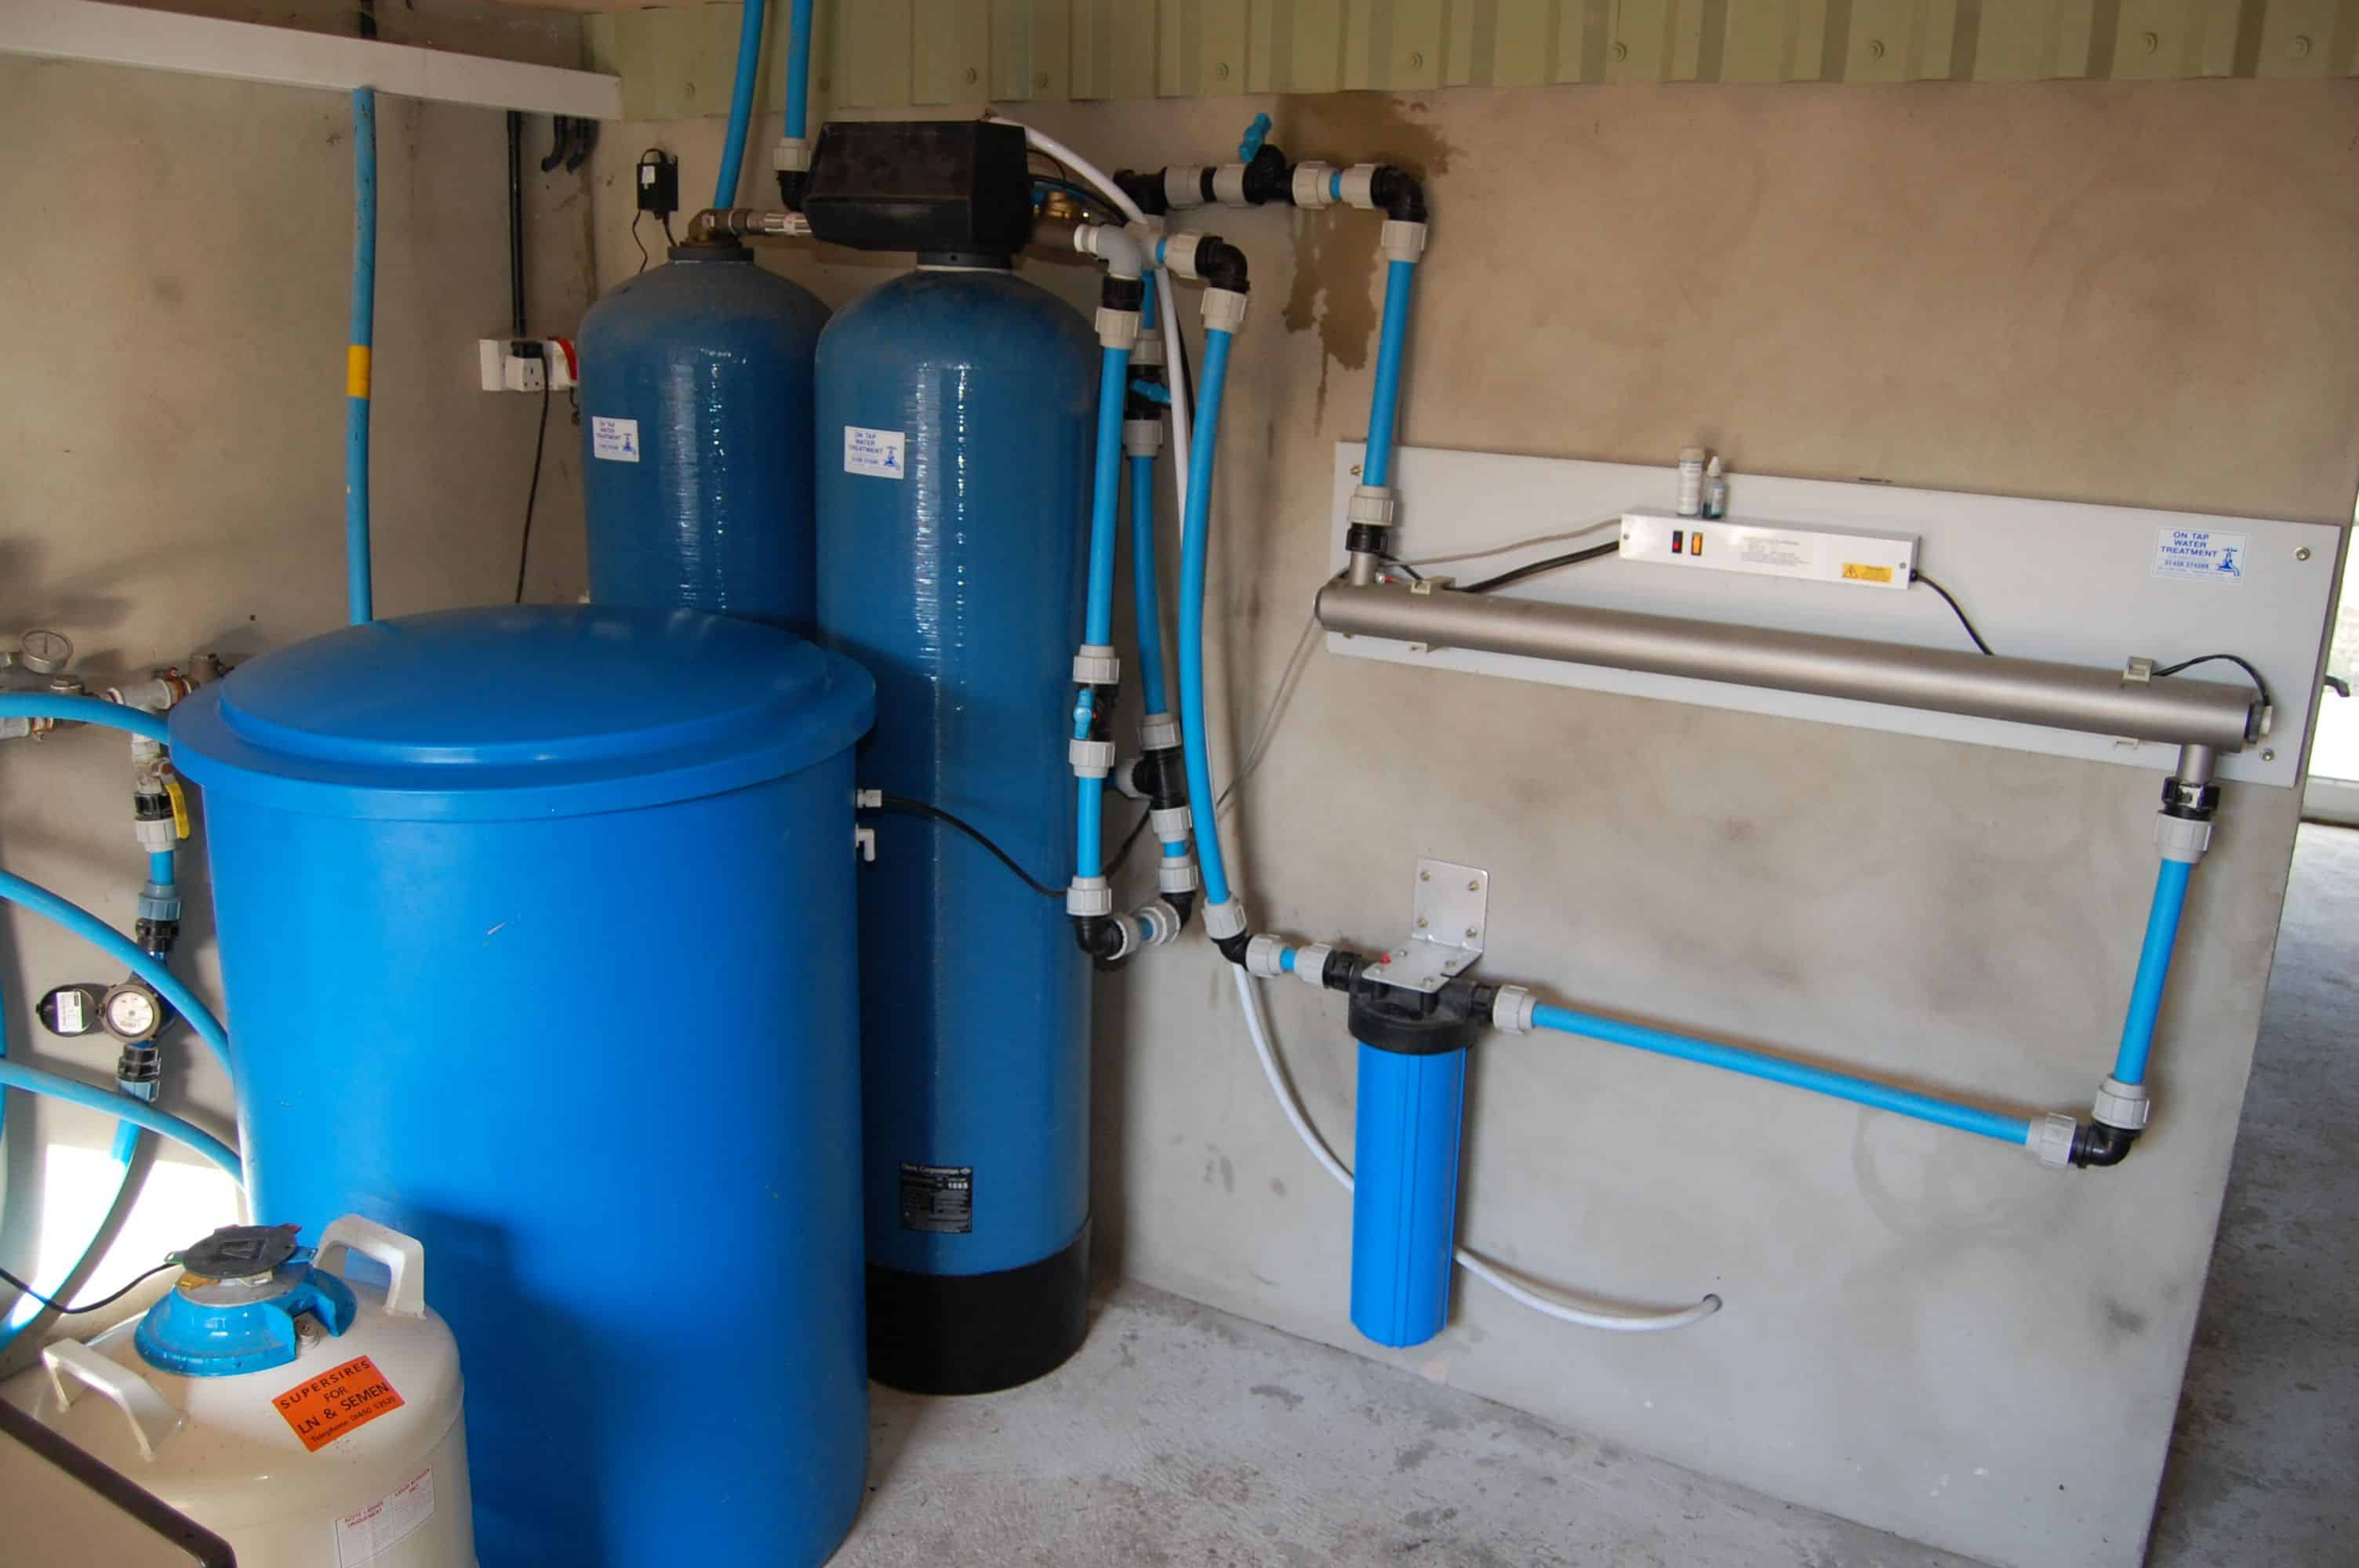 Domestic And Commercial Water Softeners From On Tap Water